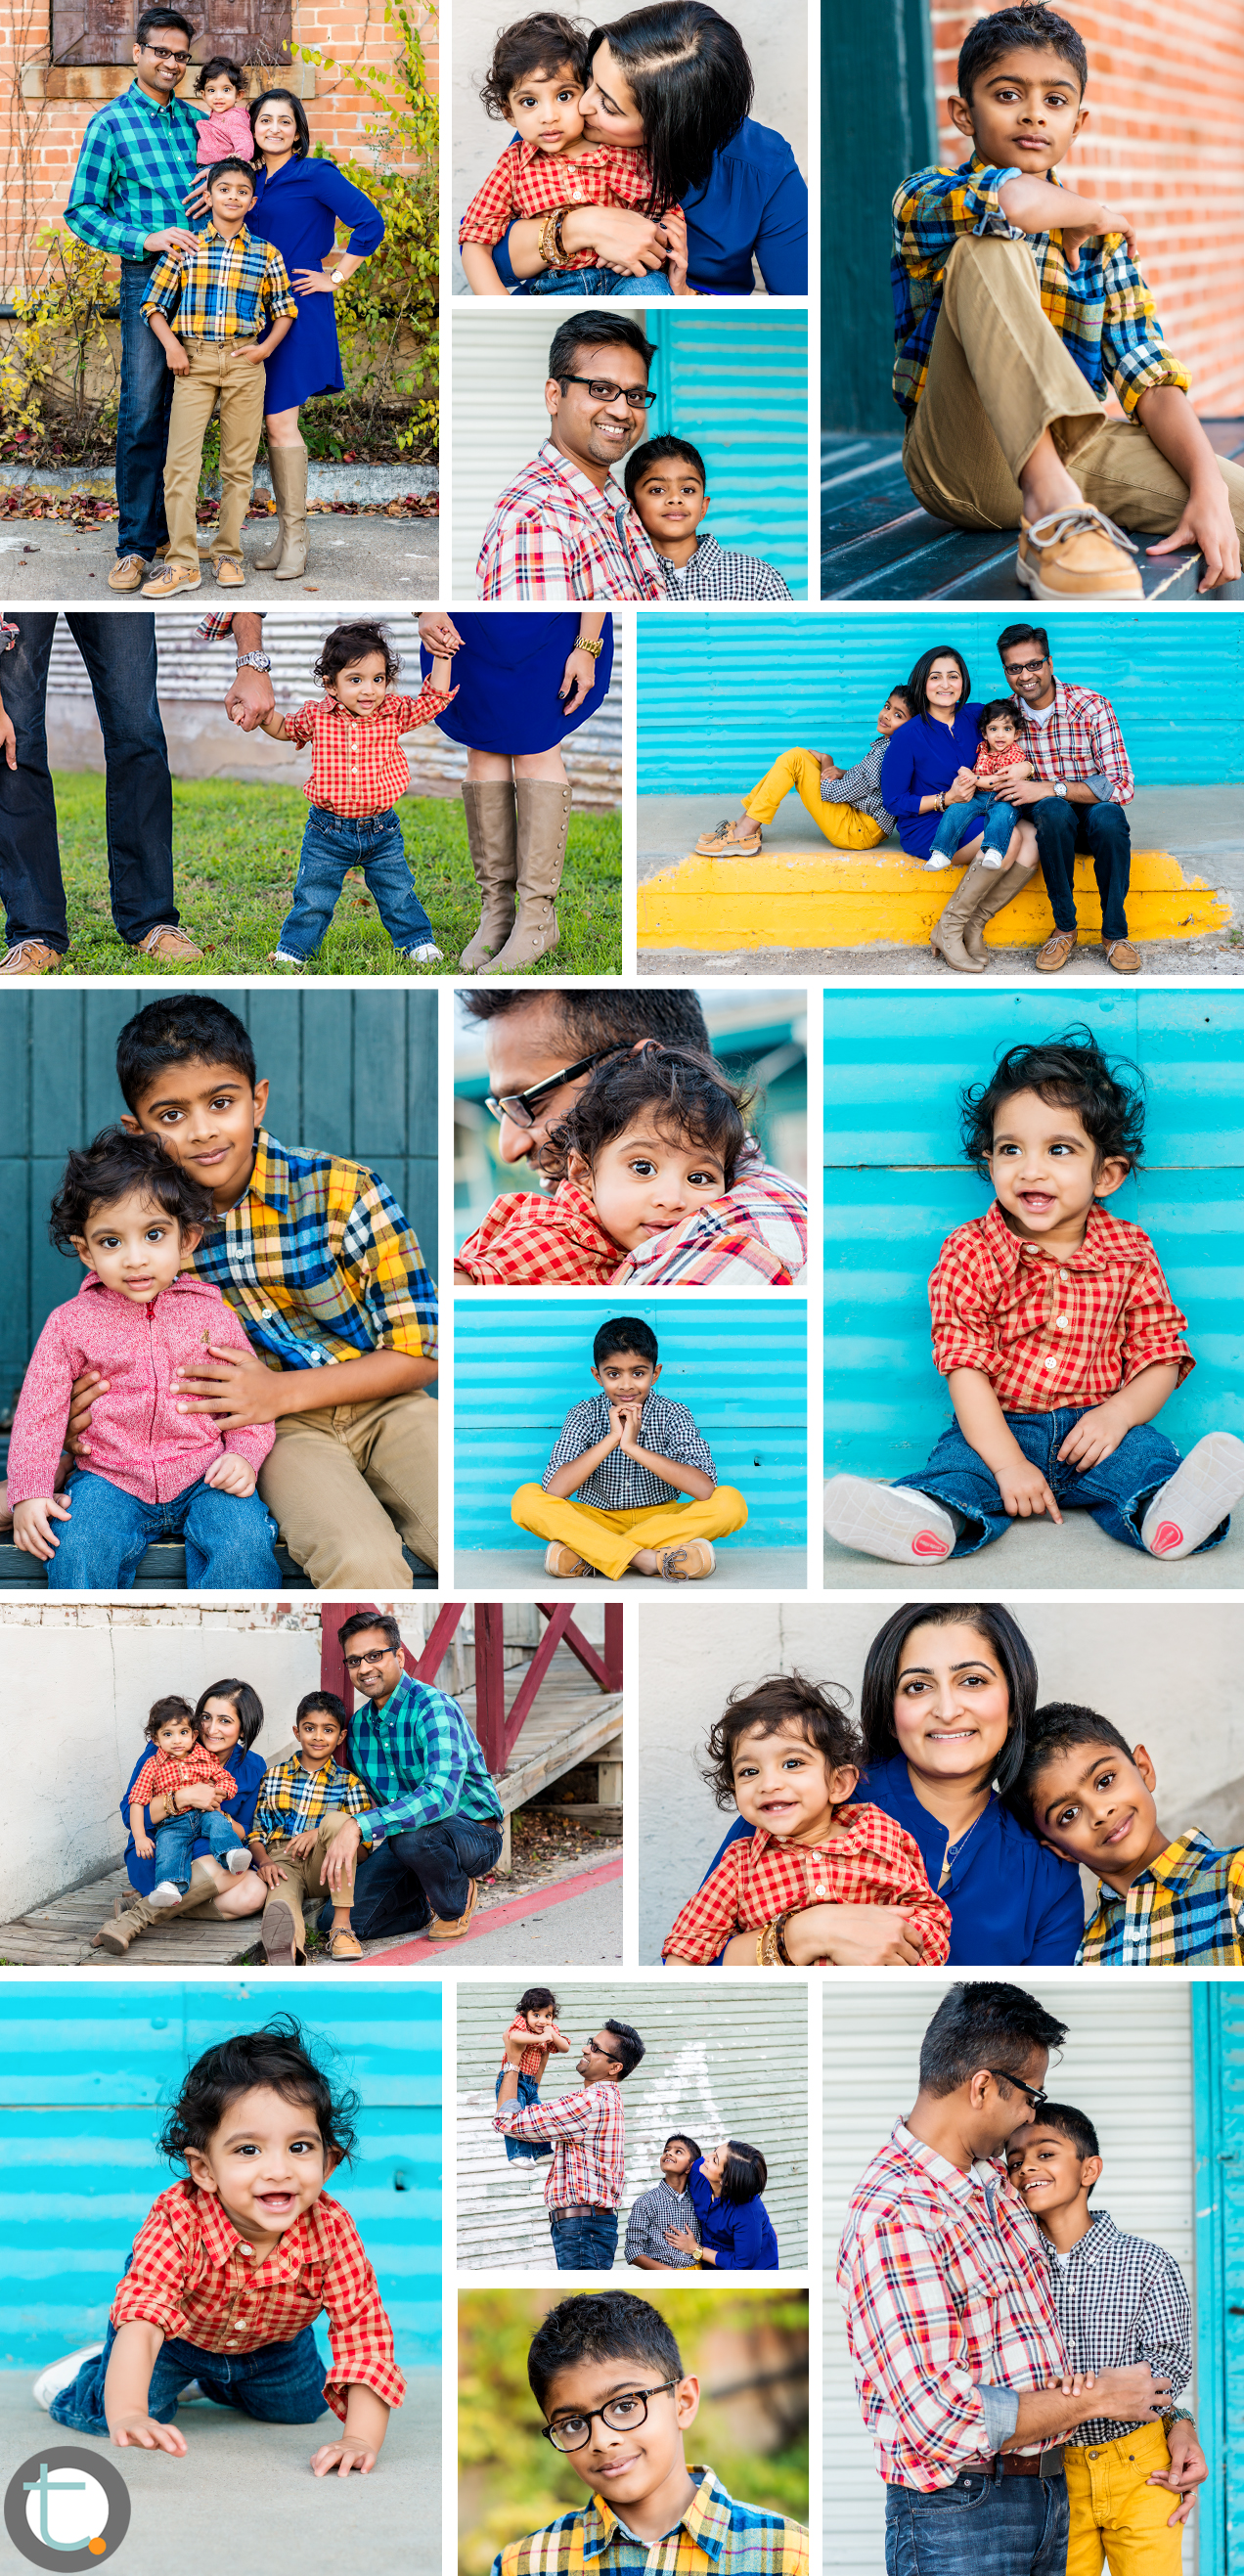 Family_portrait_downtown_mckinney_texas_plaid_bold_color_quartet_baby_boy.jpg